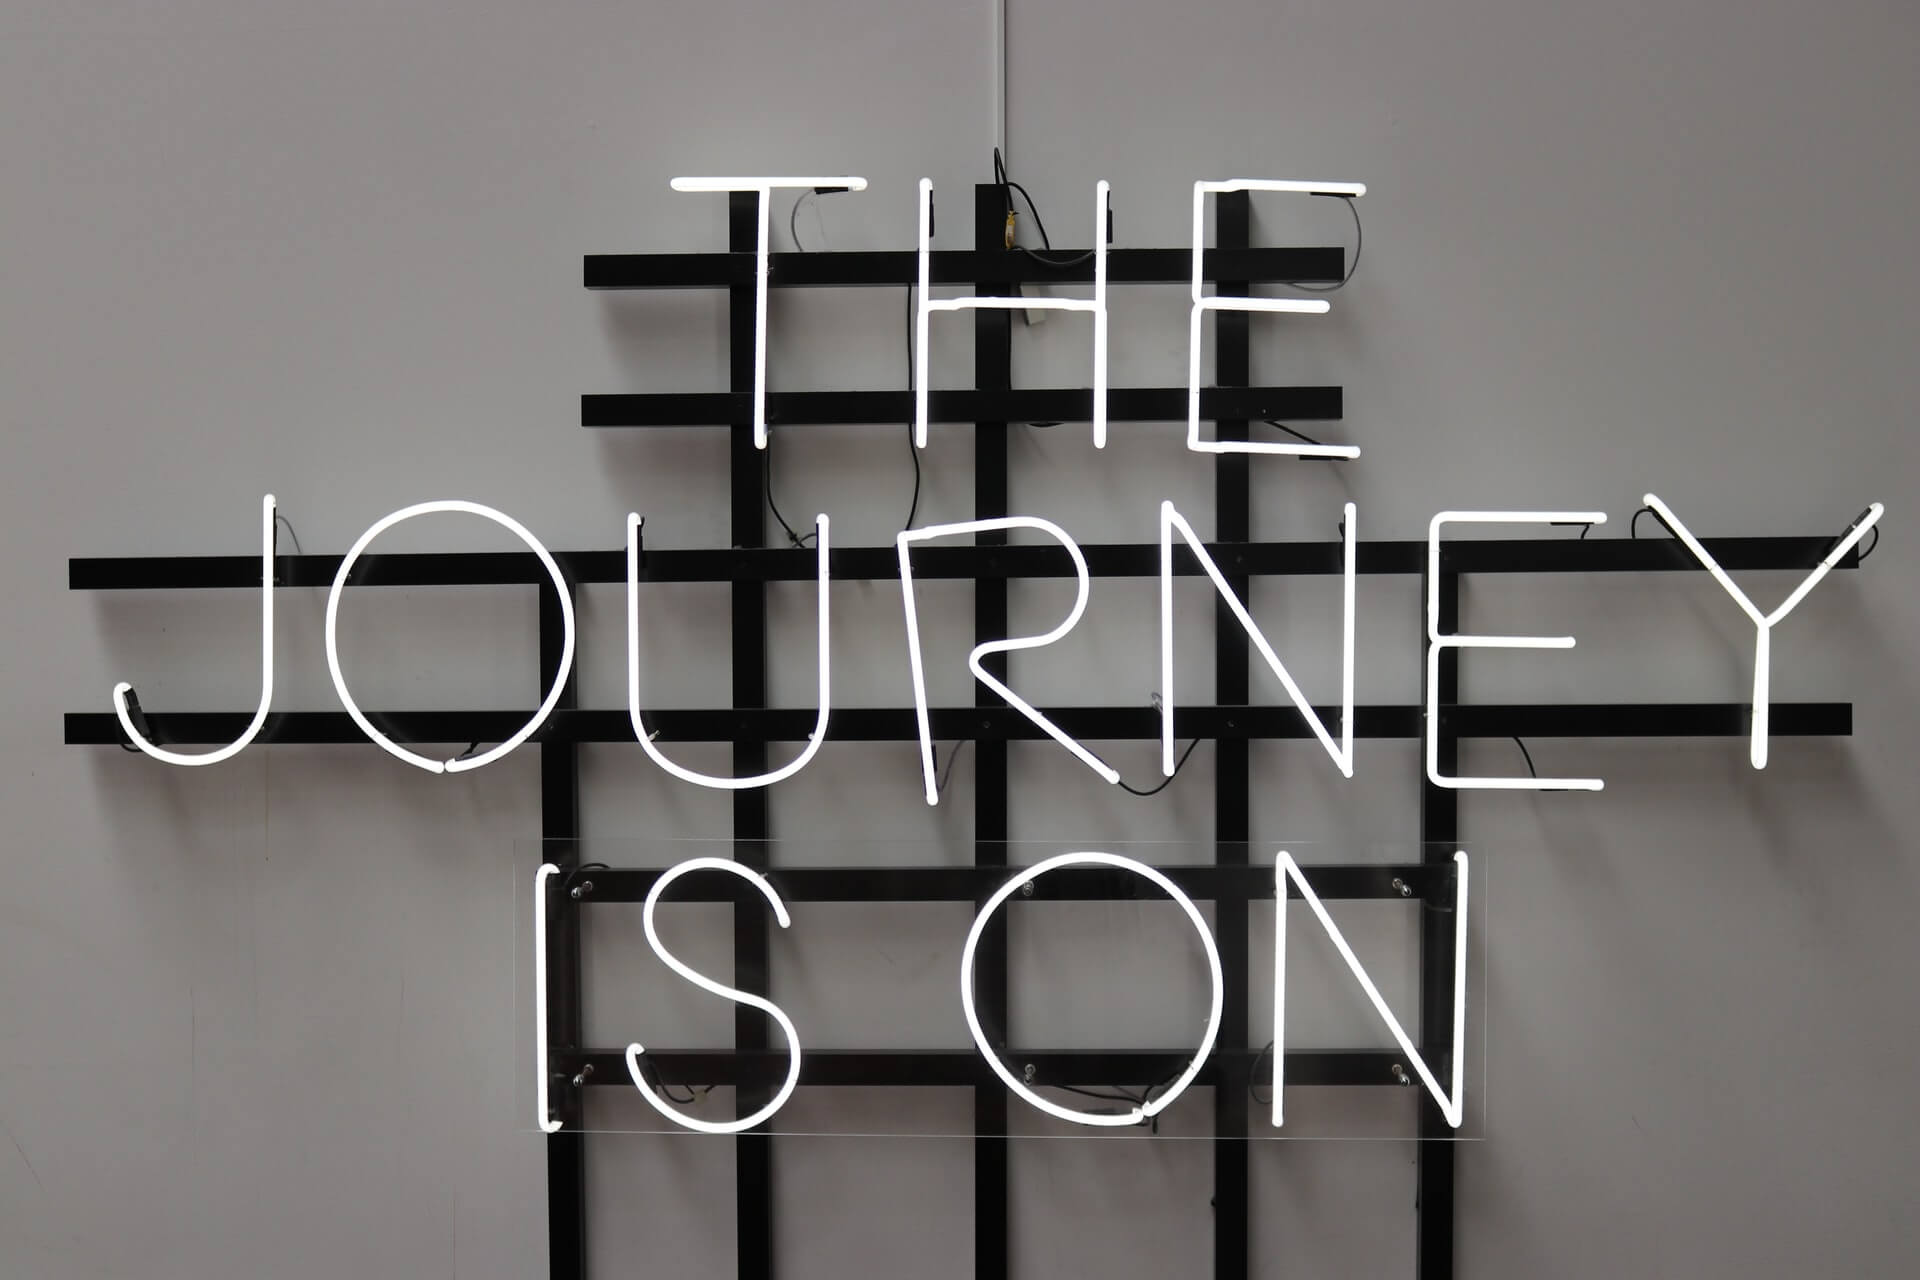 Neon sign that reads the Journey is on